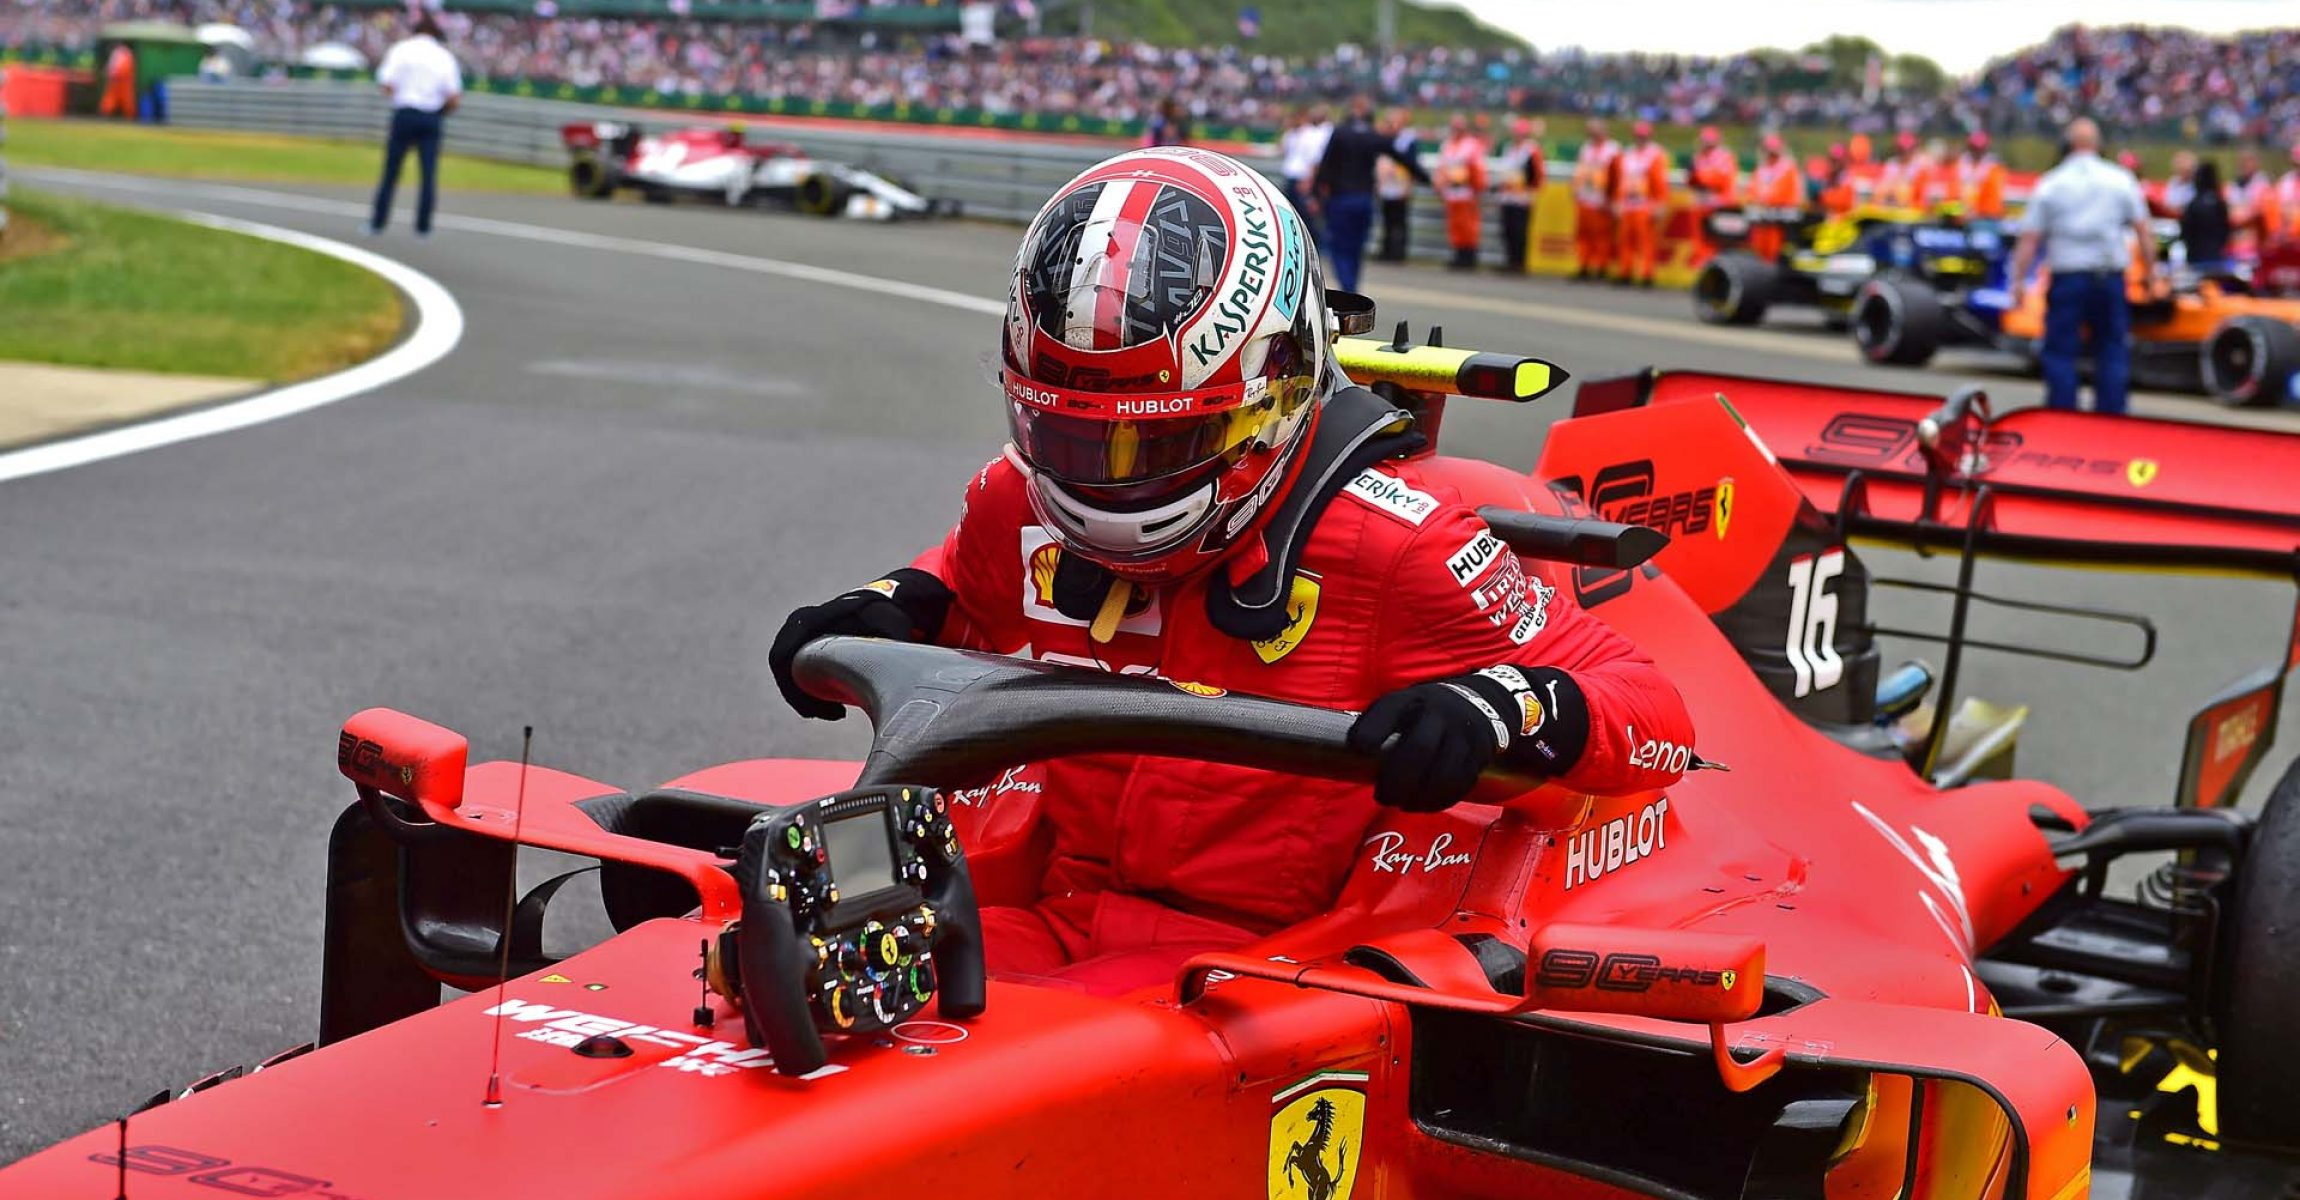 GP GRAN BRETAGNA F1/2019 - DOMENICA 14/07/2019 credit: @Scuderia Ferrari Press Office Charles Leclerc